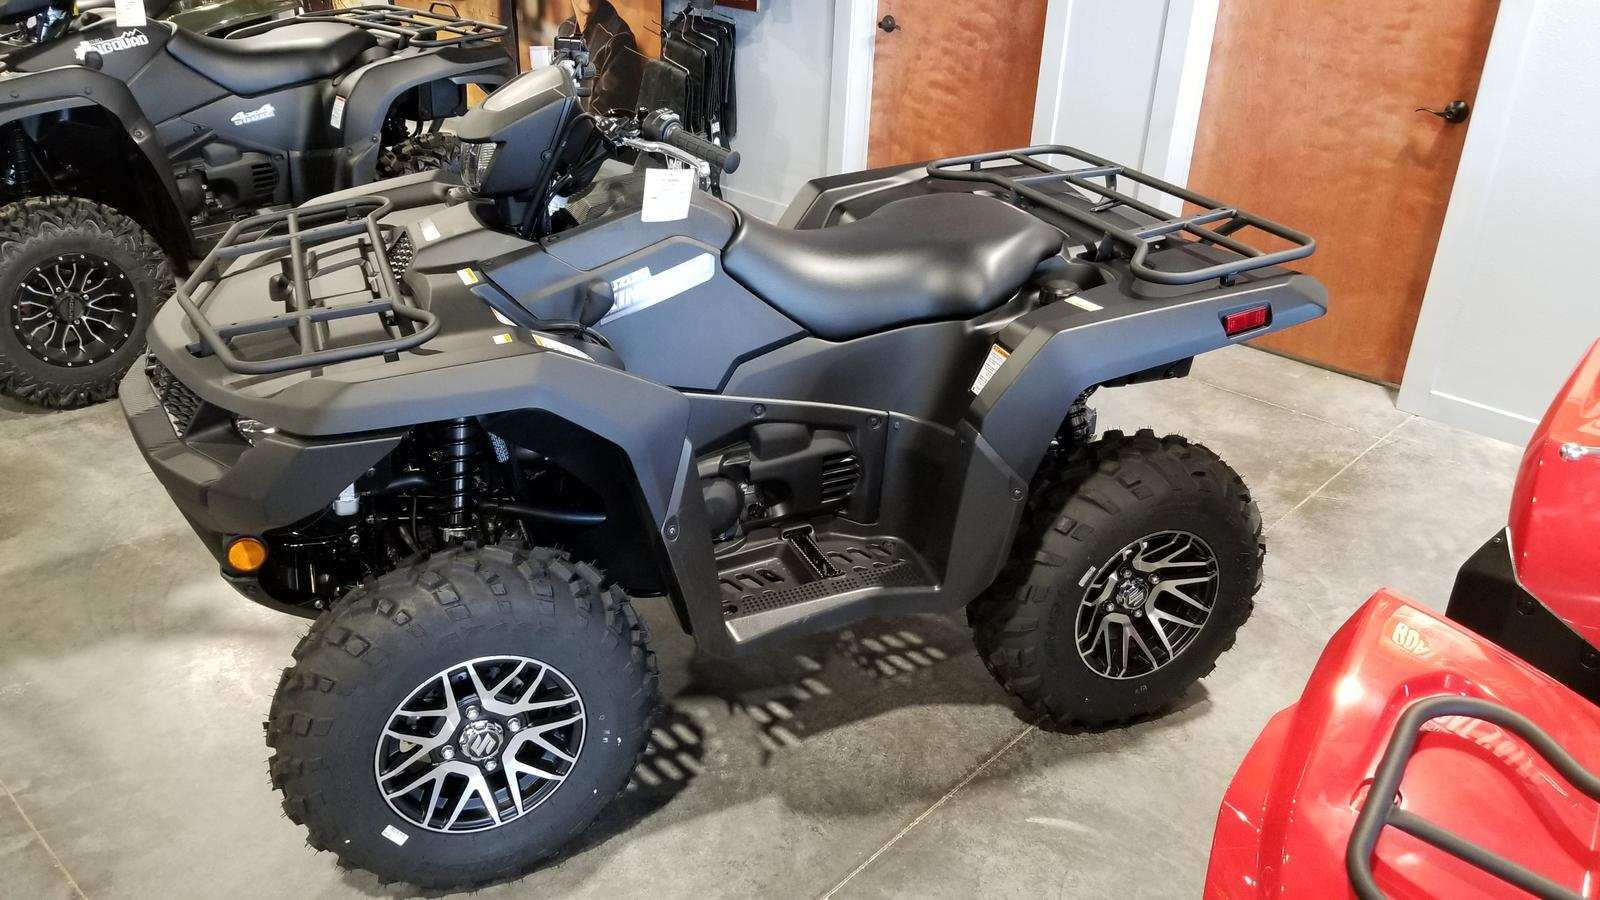 44 Gallery of 2019 Suzuki 750 King Quad Specs and Review with 2019 Suzuki 750 King Quad